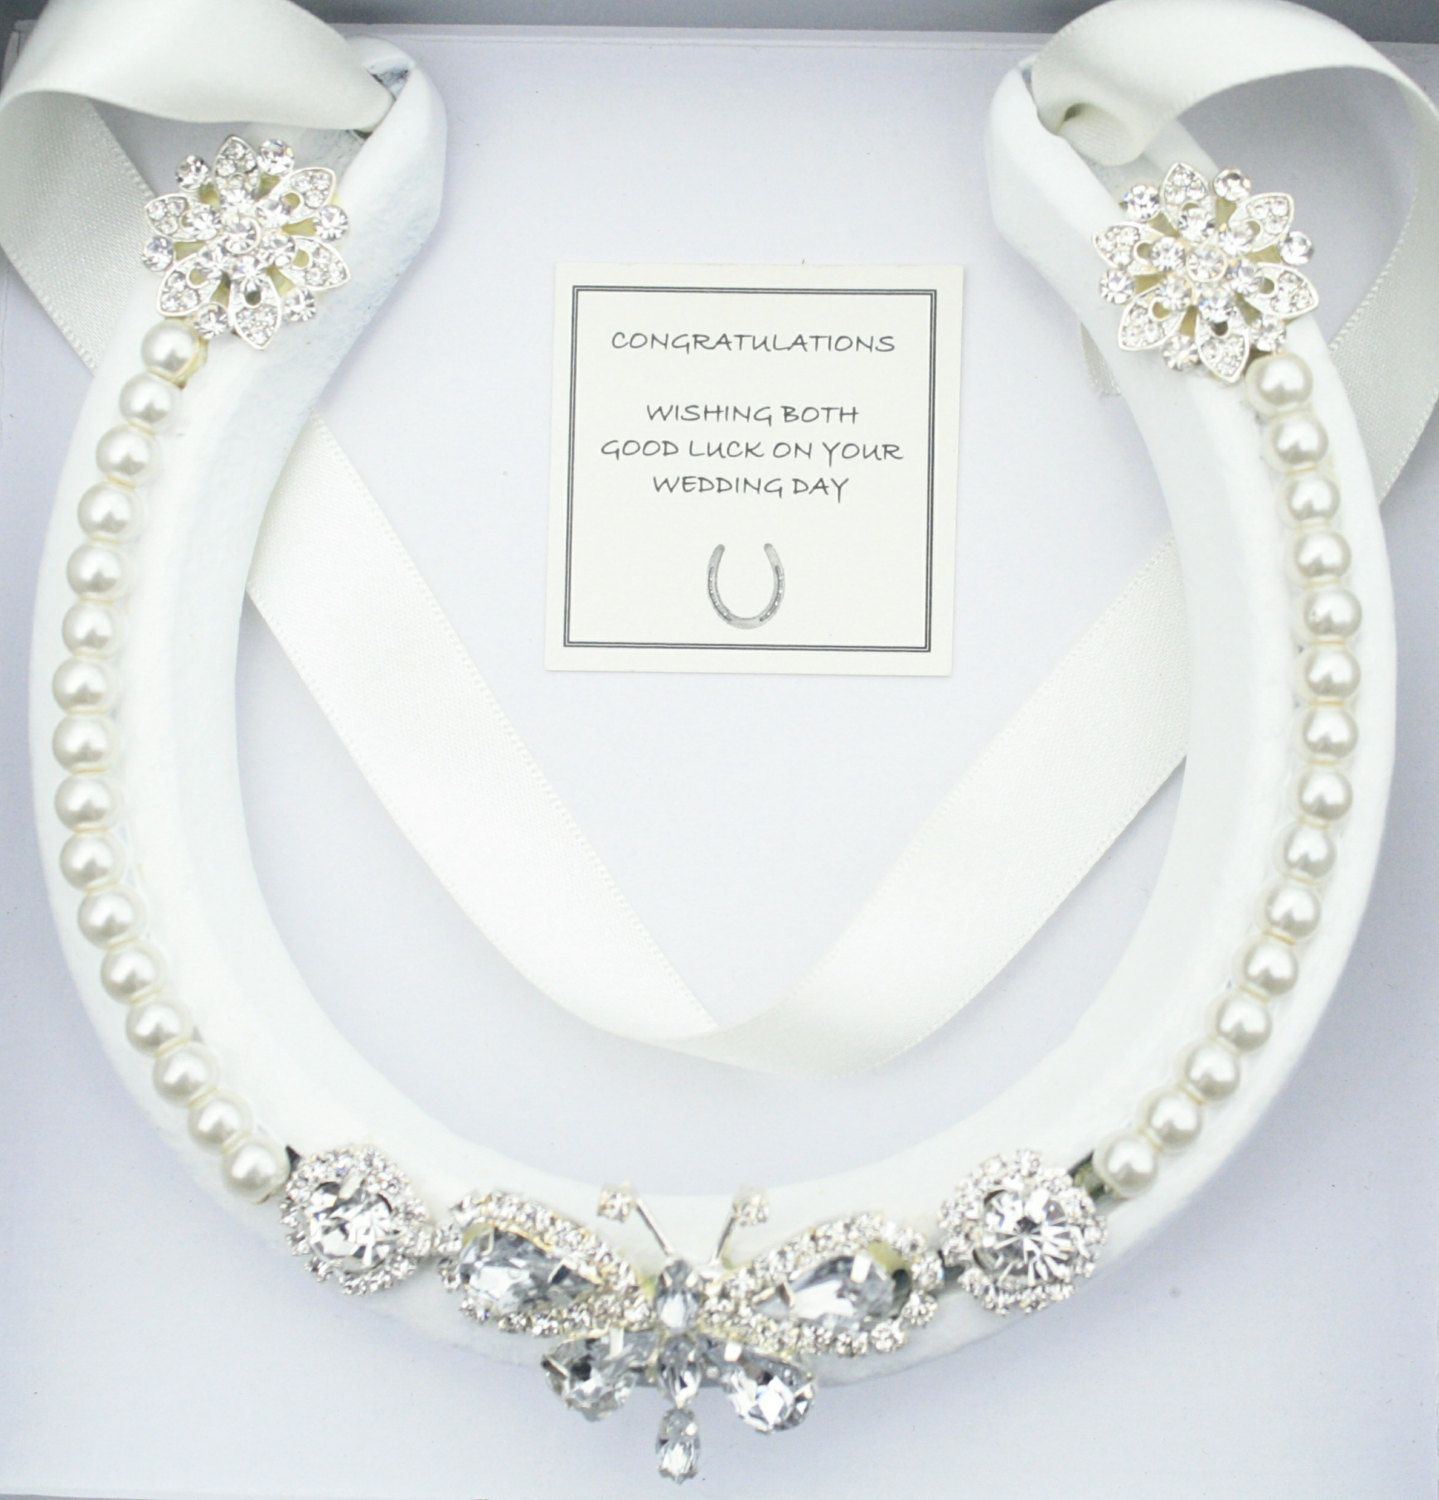 Horseshoe Wedding Gift: Wedding Bridal Real Lucky Horseshoe Good Luck Wedding